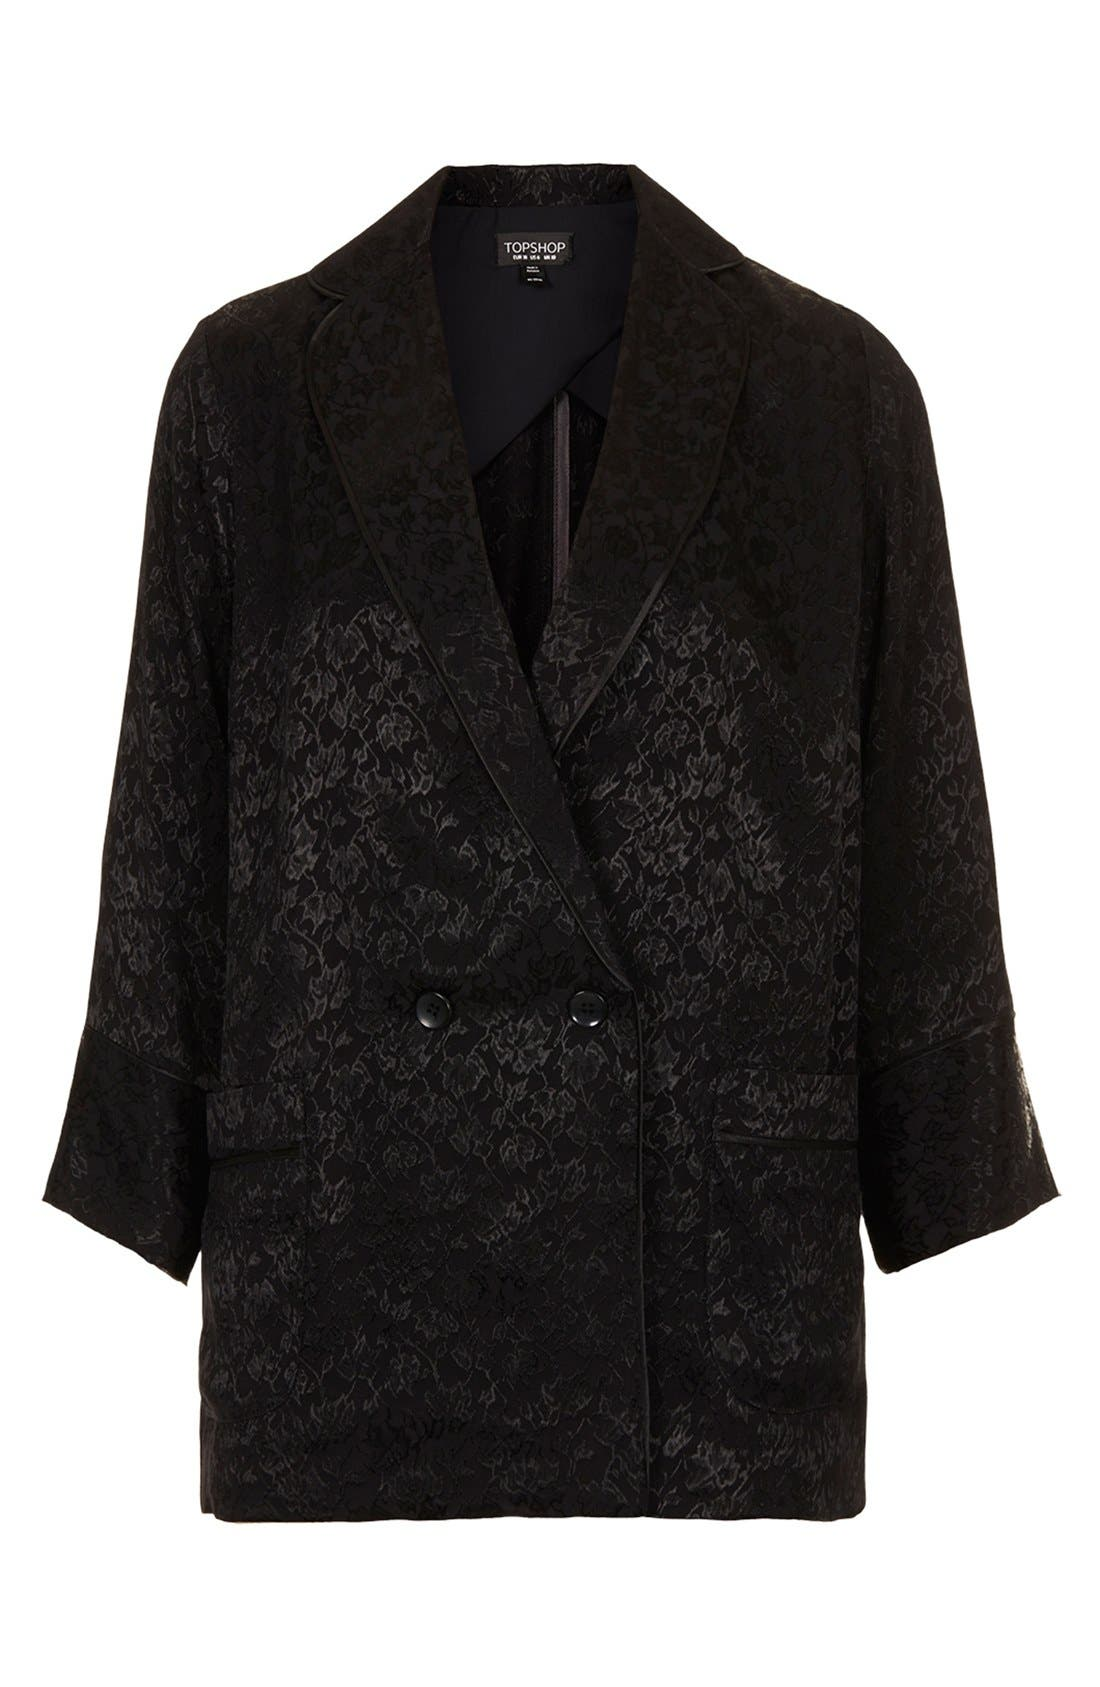 Alternate Image 3  - Topshop Floral Jacquard Jacket